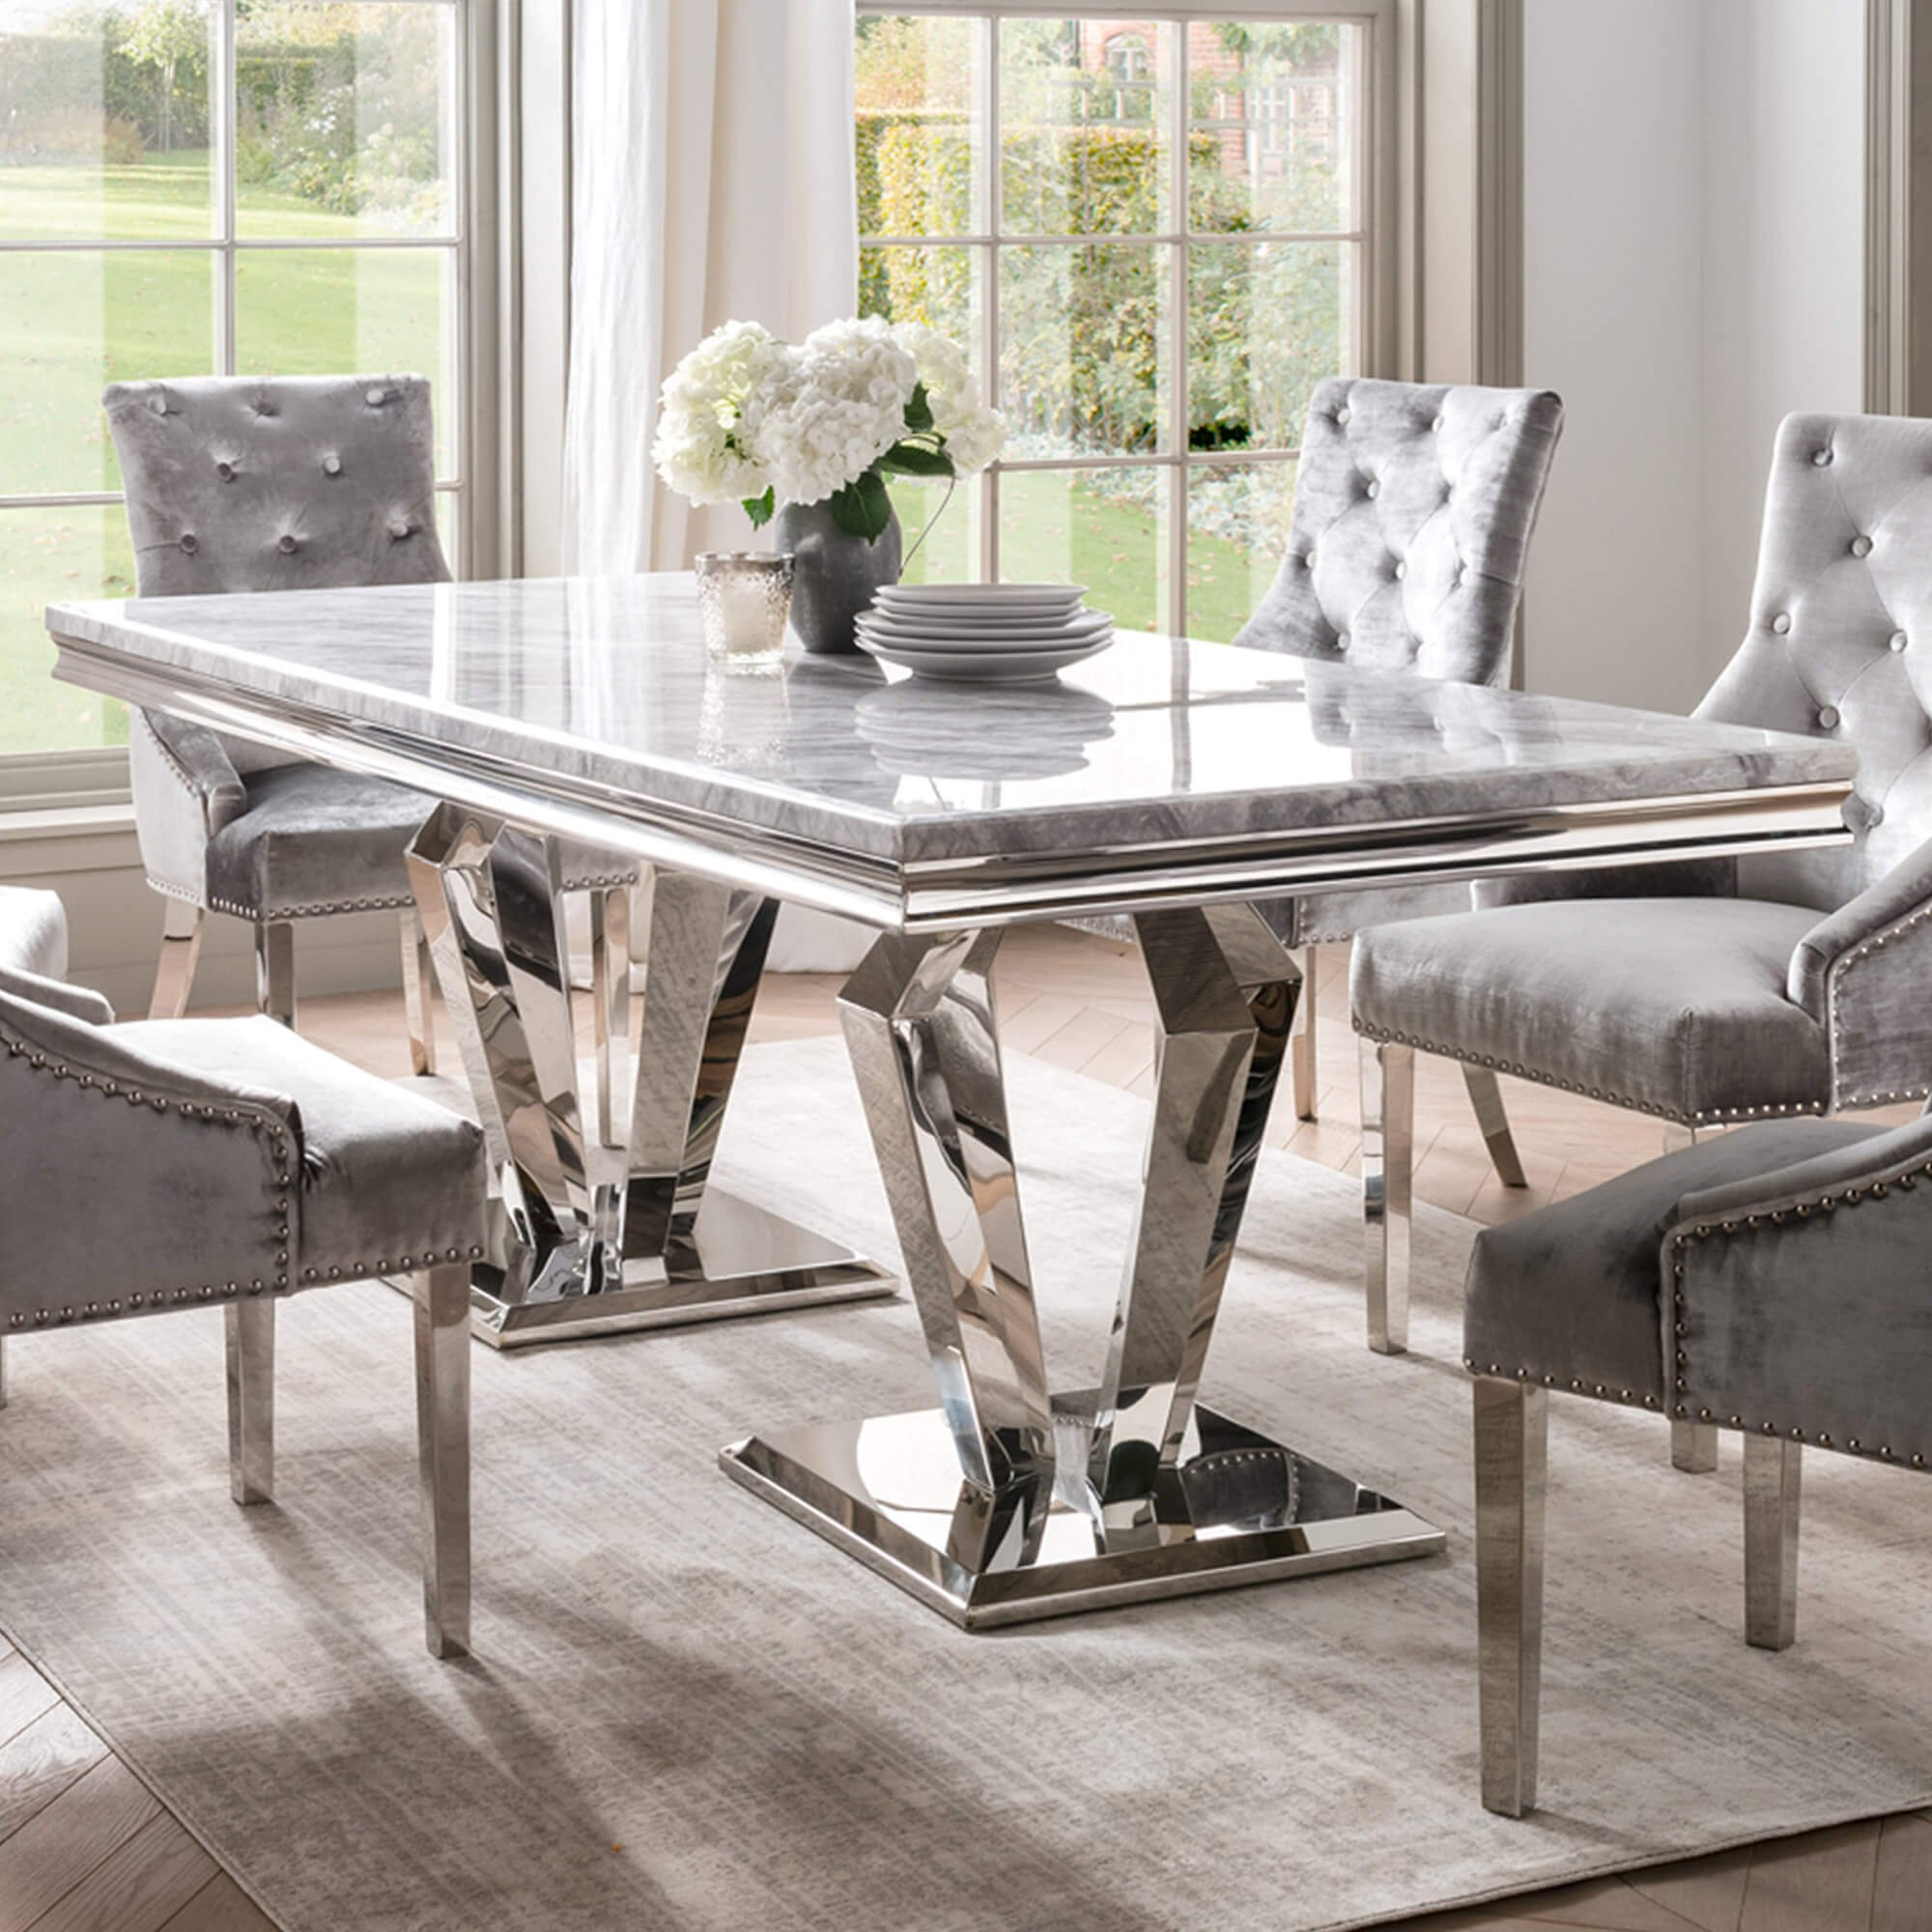 Paradox 9cm Grey Marble Dining Table